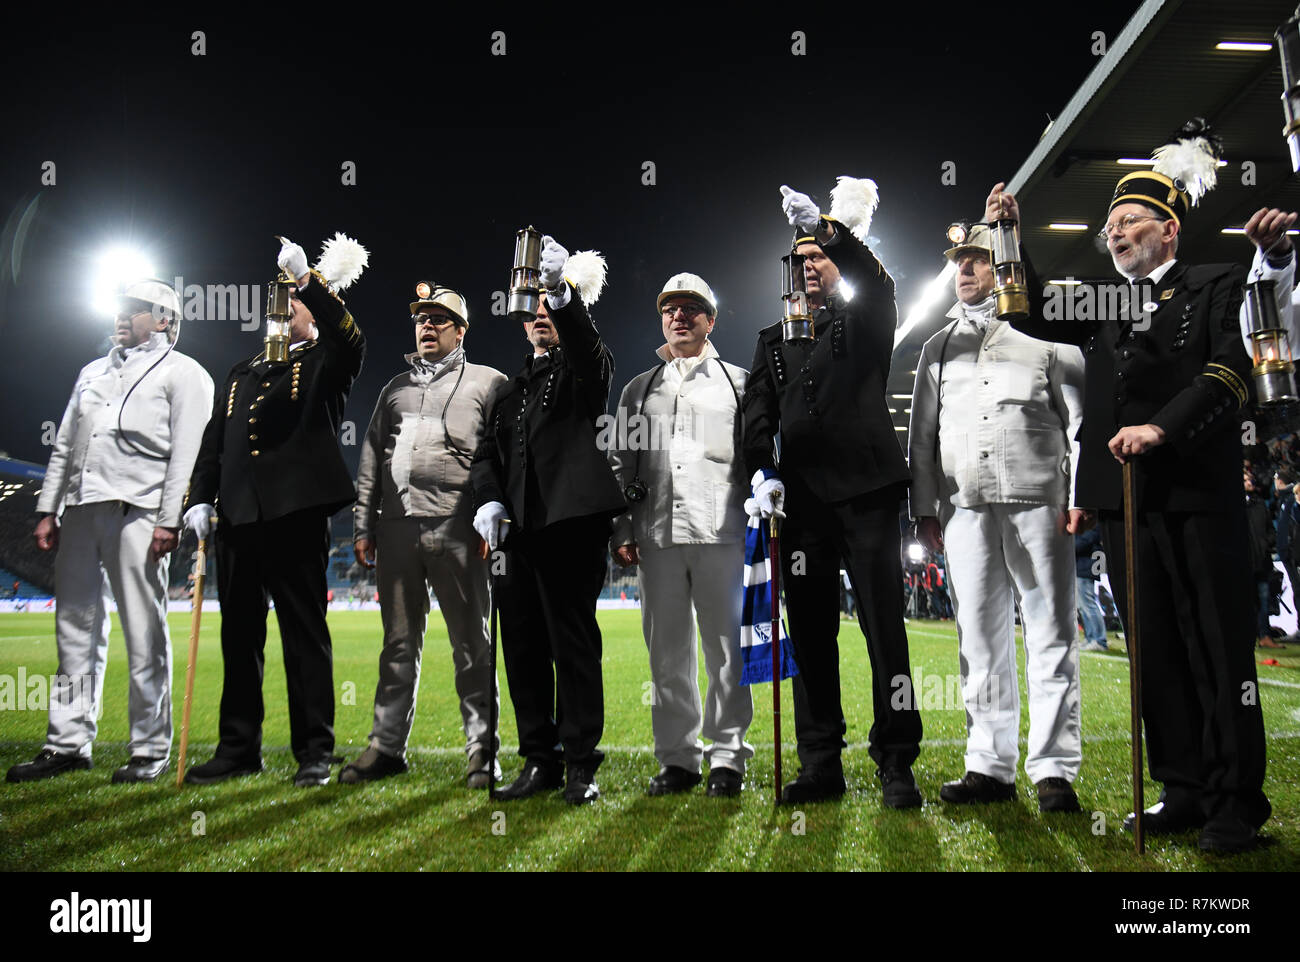 Bochum, Germany. 10th Dec, 2018. Soccer: 2nd Bundesliga, VfL Bochum - FC St. Pauli, 16th matchday in the Vonovia Ruhrstadion. Members of the Ruhrkohlechor sing the Steigerlied with the fans of Bochum. Credit: Ina Fassbender/dpa - IMPORTANT NOTE: In accordance with the requirements of the DFL Deutsche Fußball Liga or the DFB Deutscher Fußball-Bund, it is prohibited to use or have used photographs taken in the stadium and/or the match in the form of sequence images and/or video-like photo sequences./dpa/Alamy Live News - Stock Image